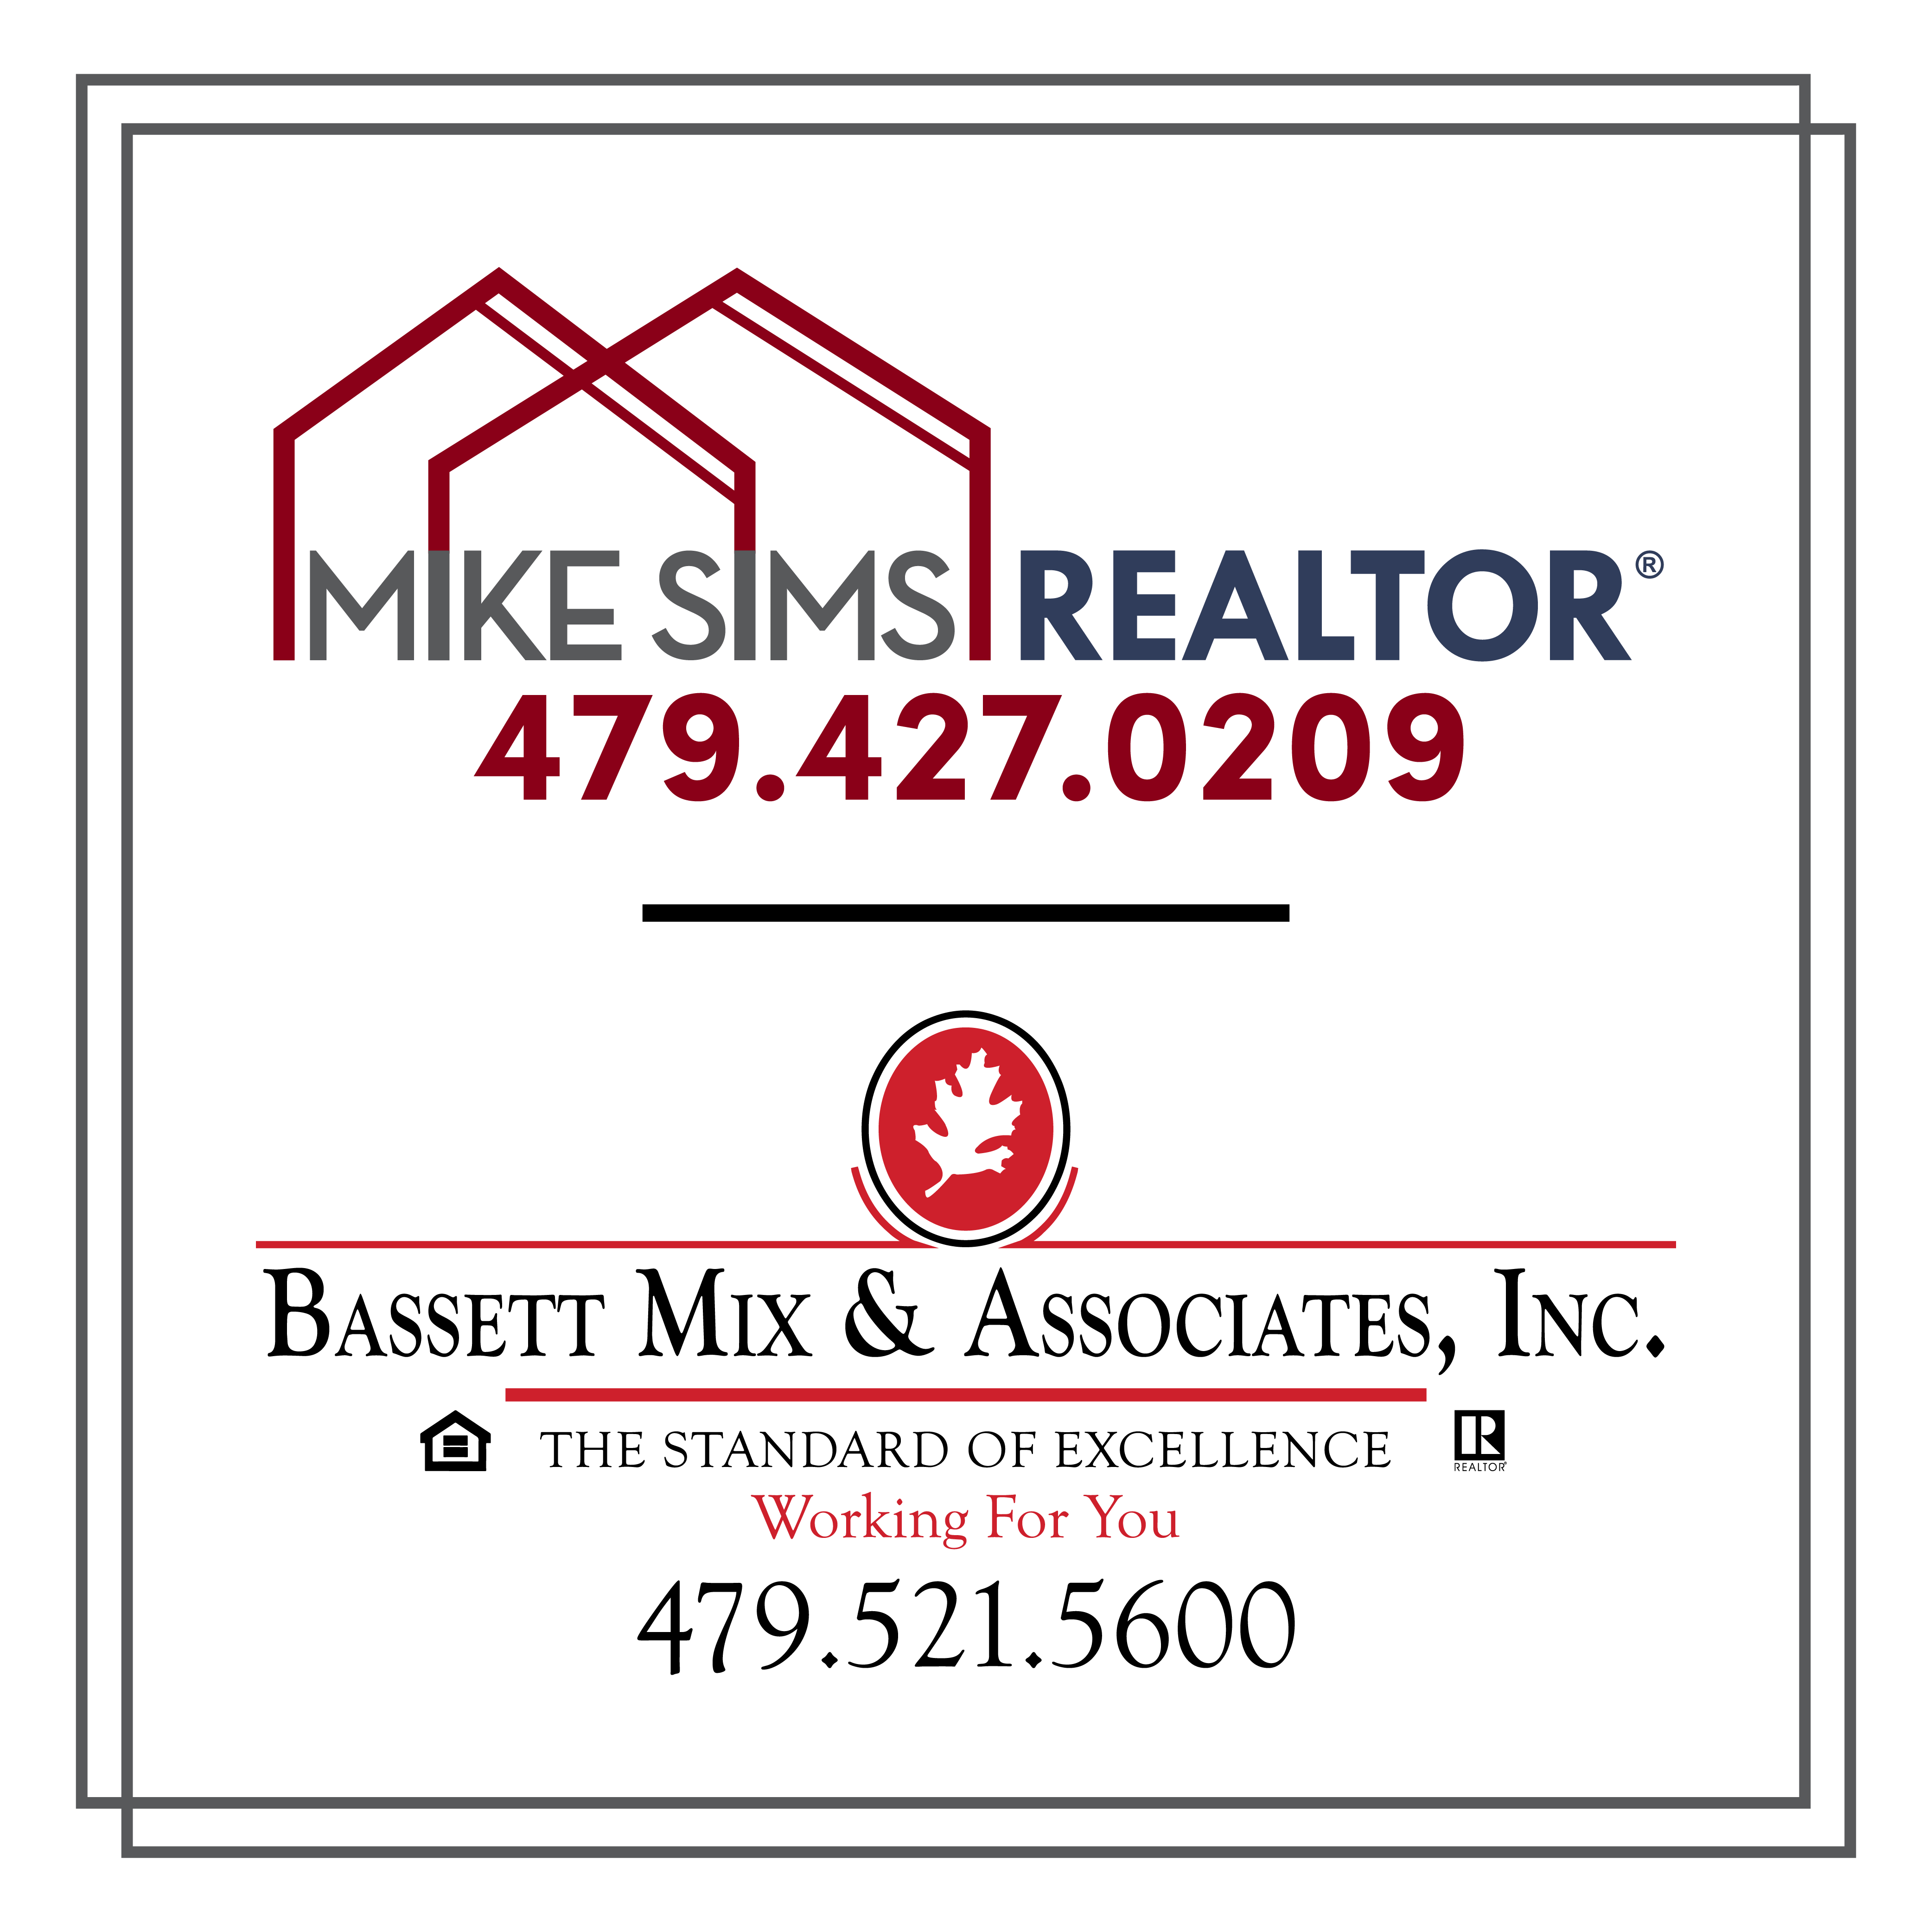 Mike Sims, REALTOR®, Bassett Mix & Associates, Inc., O-479.521.5600, C-479.427.0209